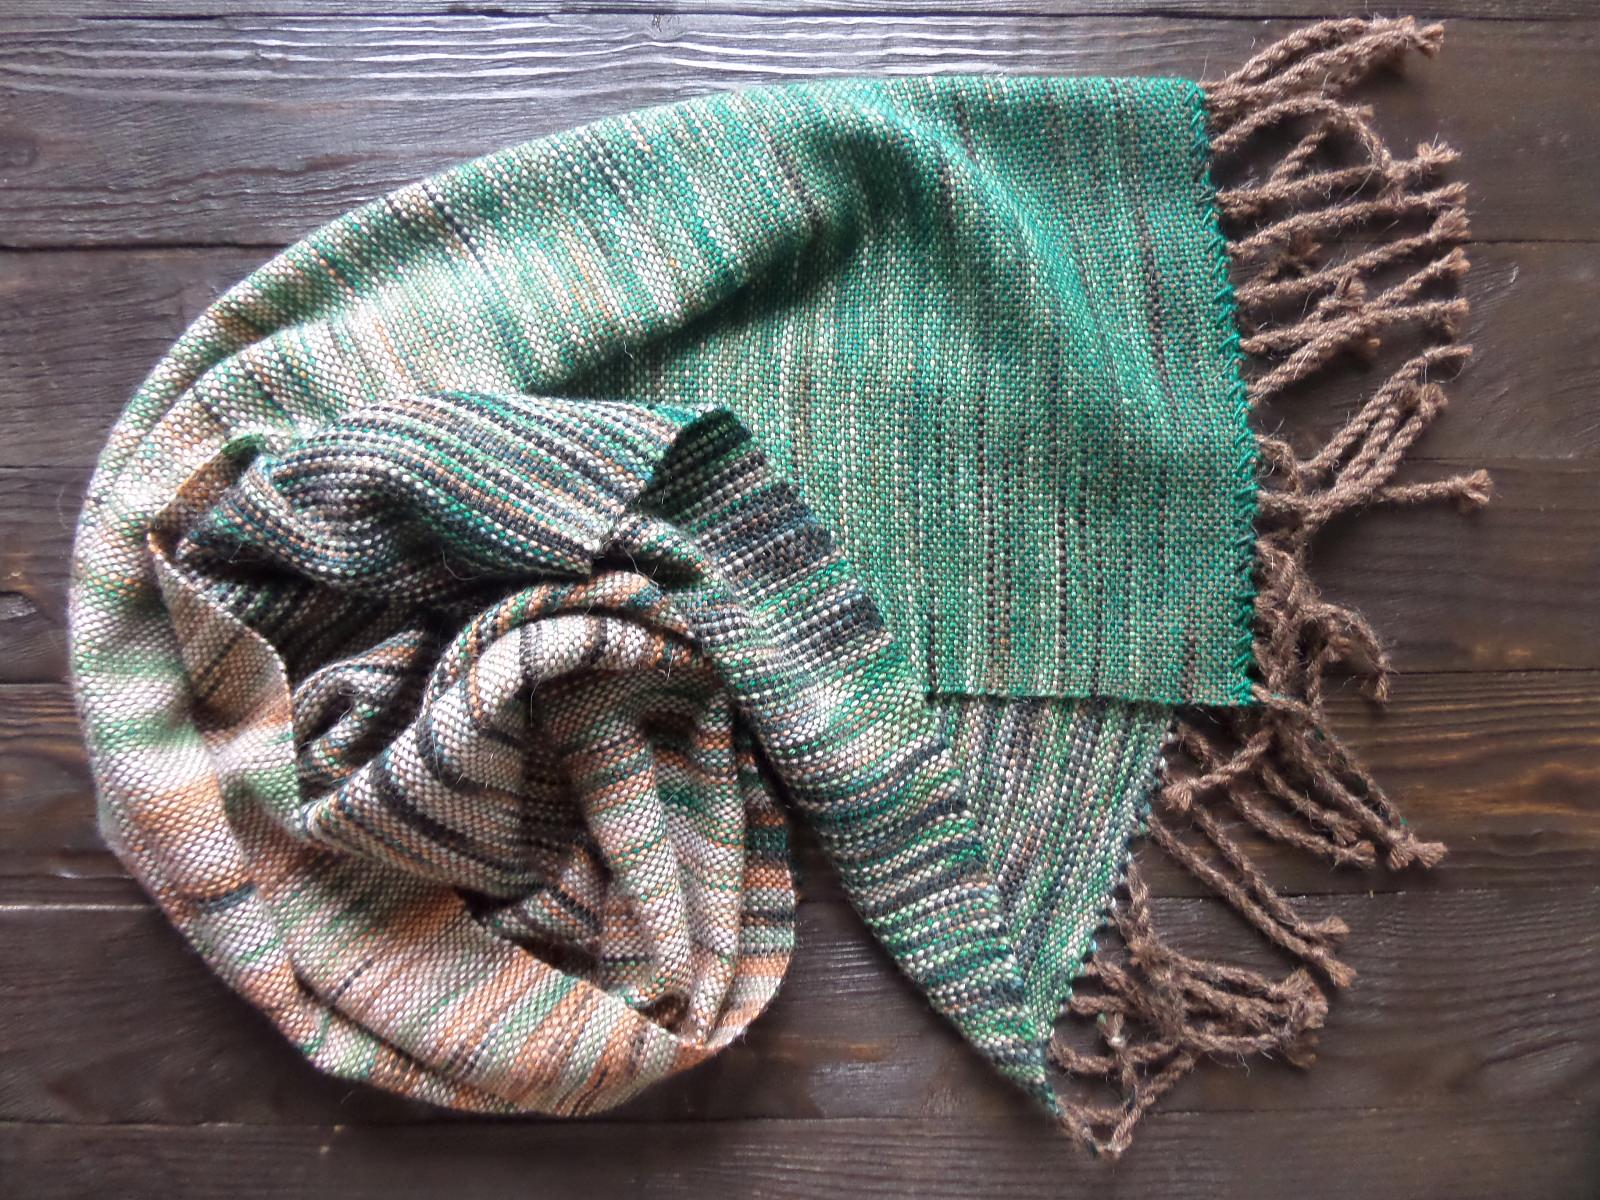 Scarf hand weaving green-brown - tkanye sharfy 316